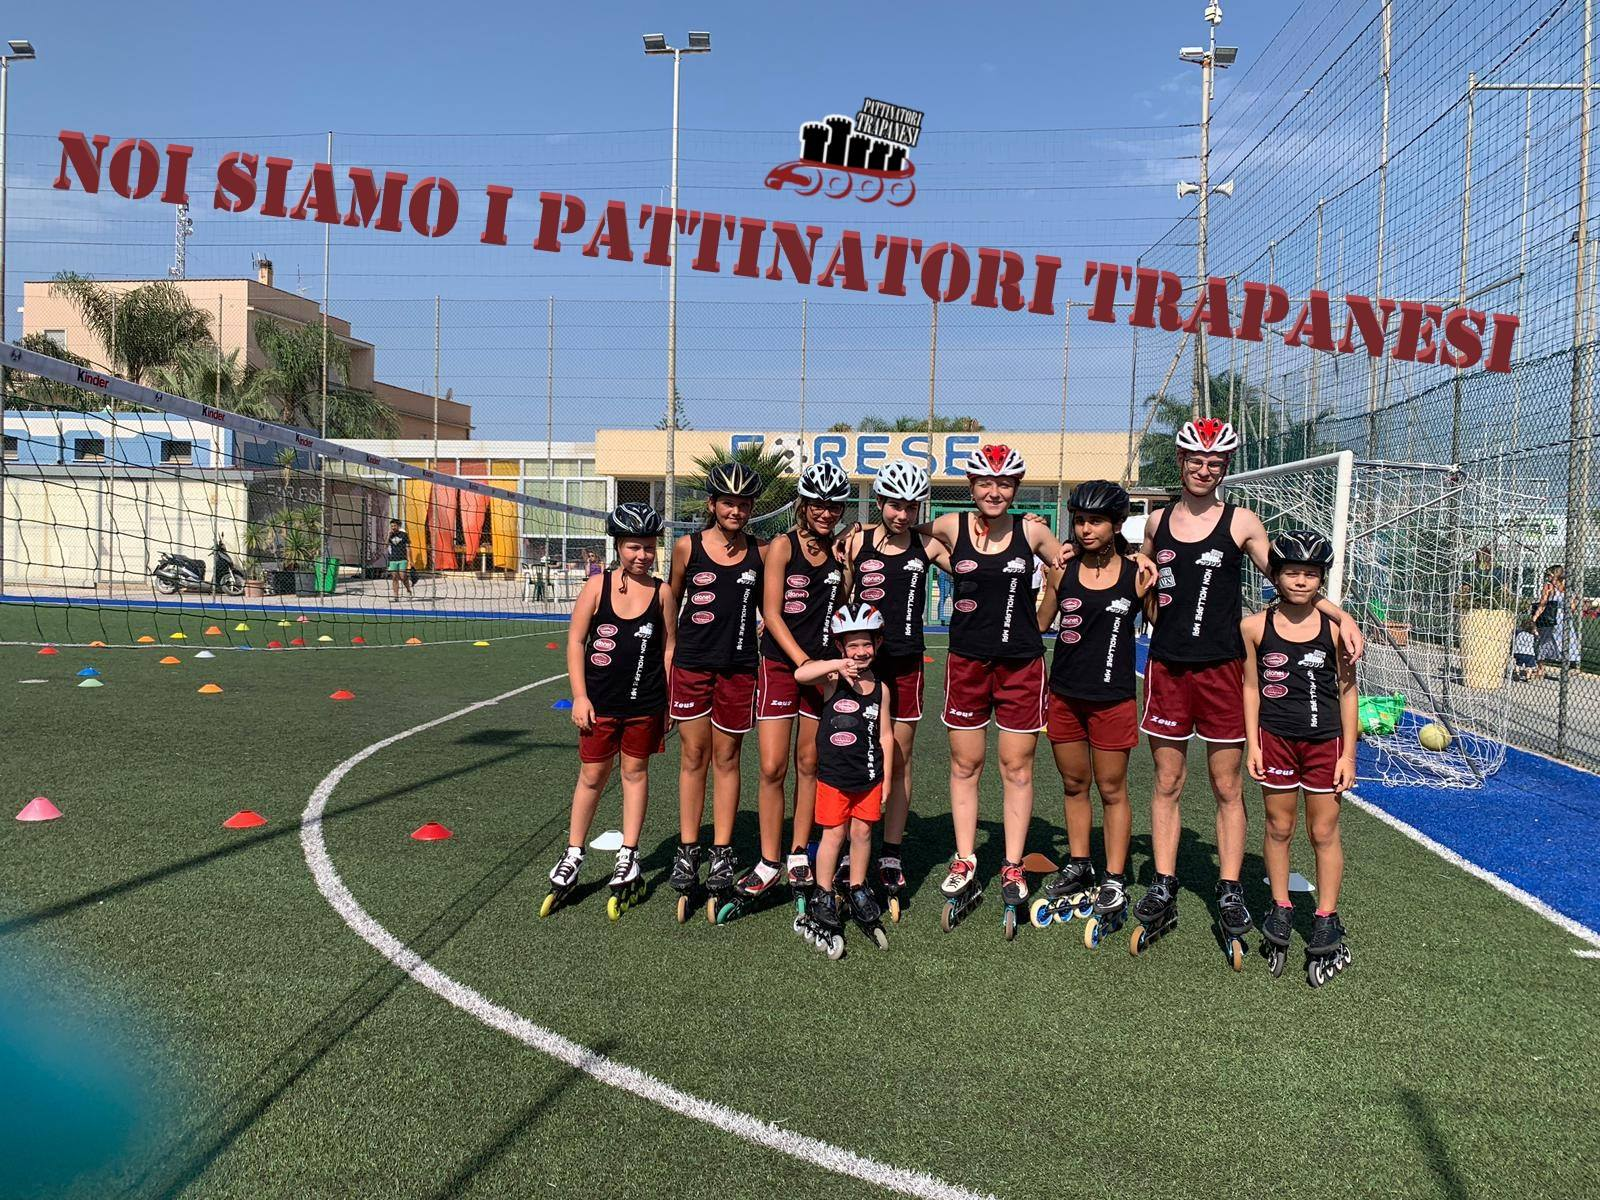 Grest 2019 con i Pattinatori Trapanesi 1 00